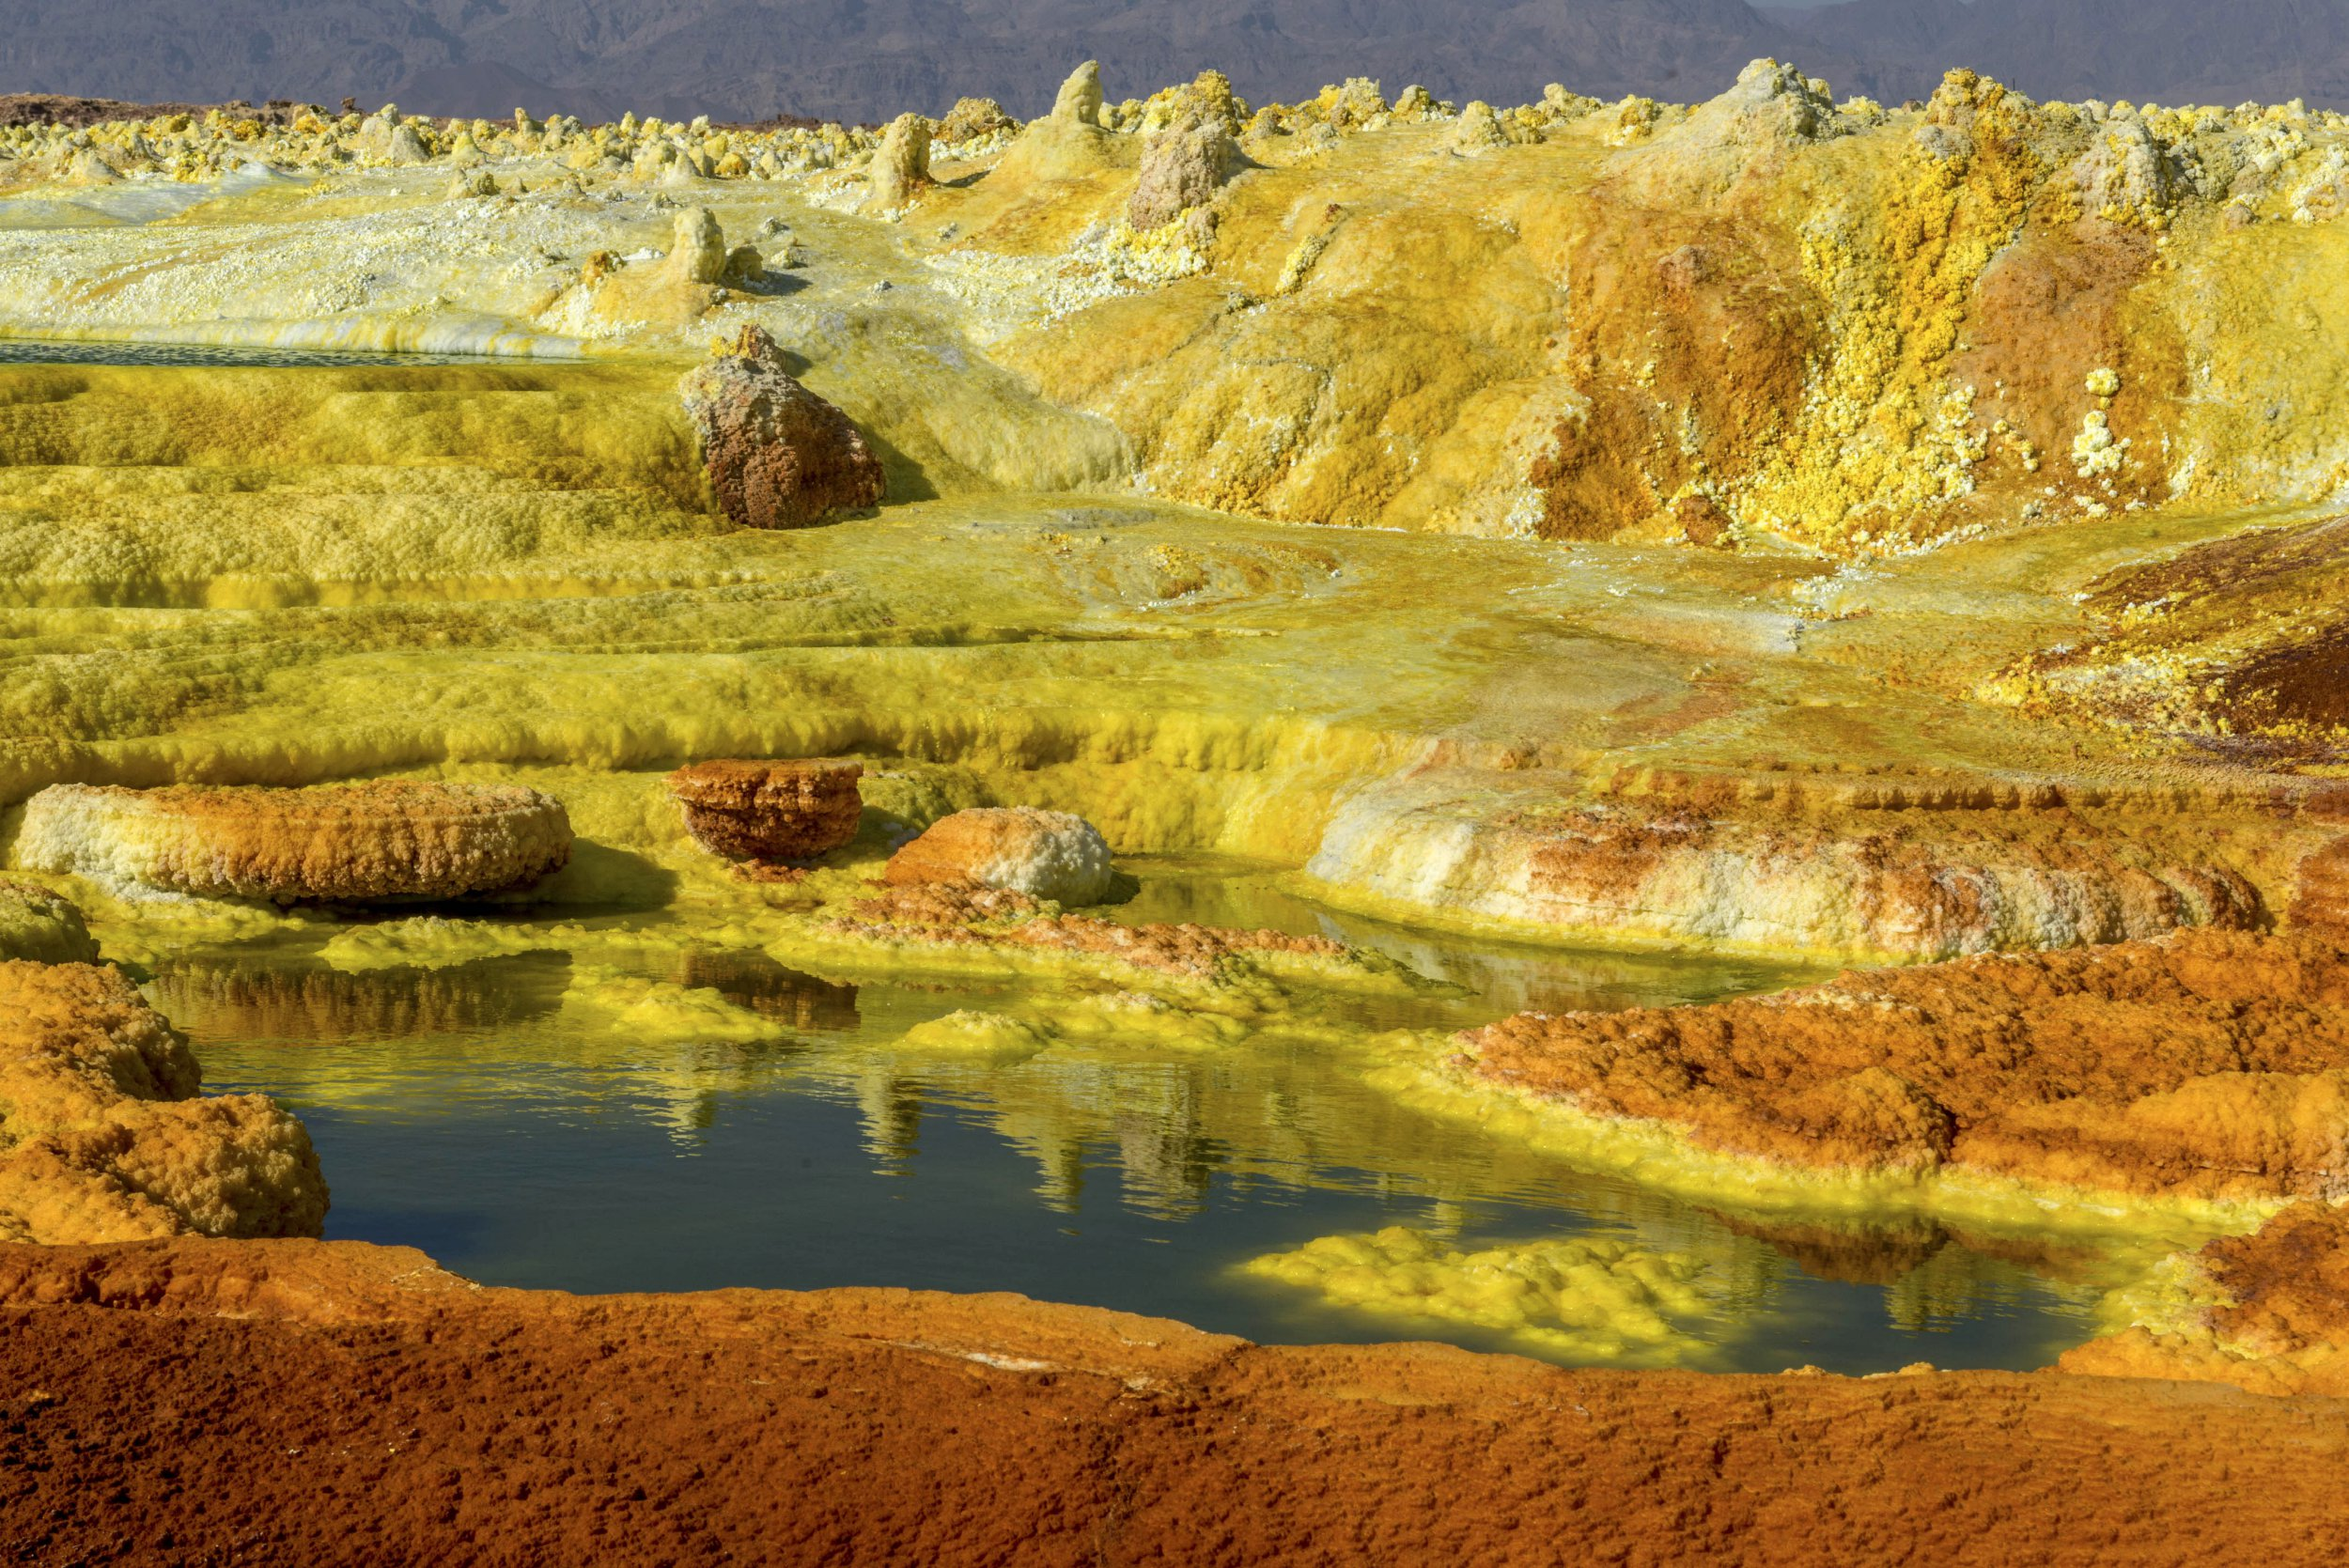 PIC BY Neta Dekel / CATERS NEWS - (PICTURED ) These stunning images show the beauty and drama of Mother Nature at work. Captured deep in heart of the Danakil Desert in East Africa, the images show the acid pools near the Erta Ale volcano. Pools of brightly coloured acid can be seen amid the dramatic blast of volcanic ash. Taken by Neta Dekel, the Israeli photographer said that the acid pools were one of the most extraordinary sights he has ever seen. SEE CATERS COPY